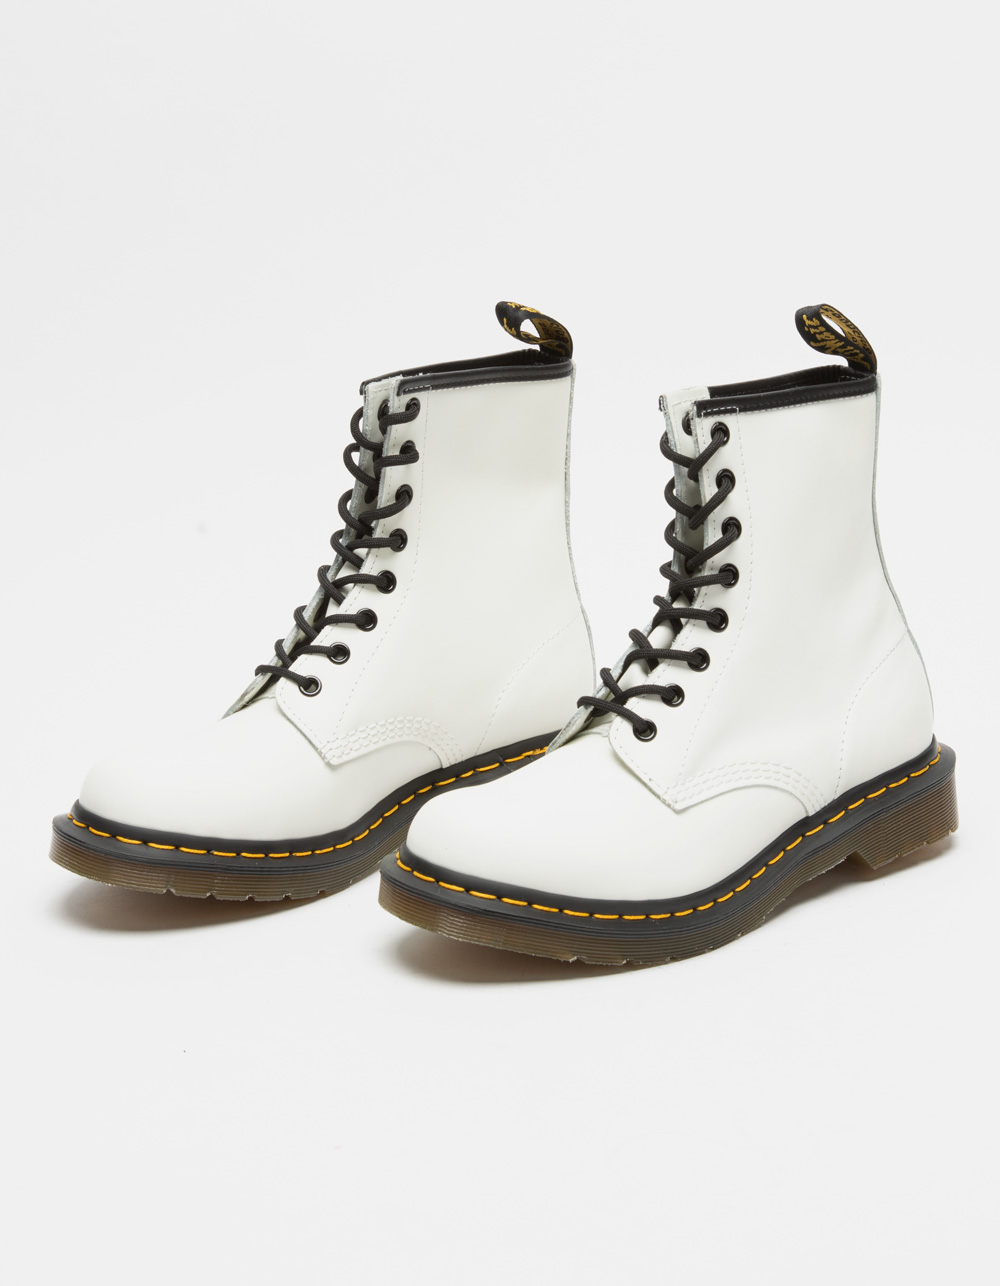 DR. MARTENS 1460 White Boots